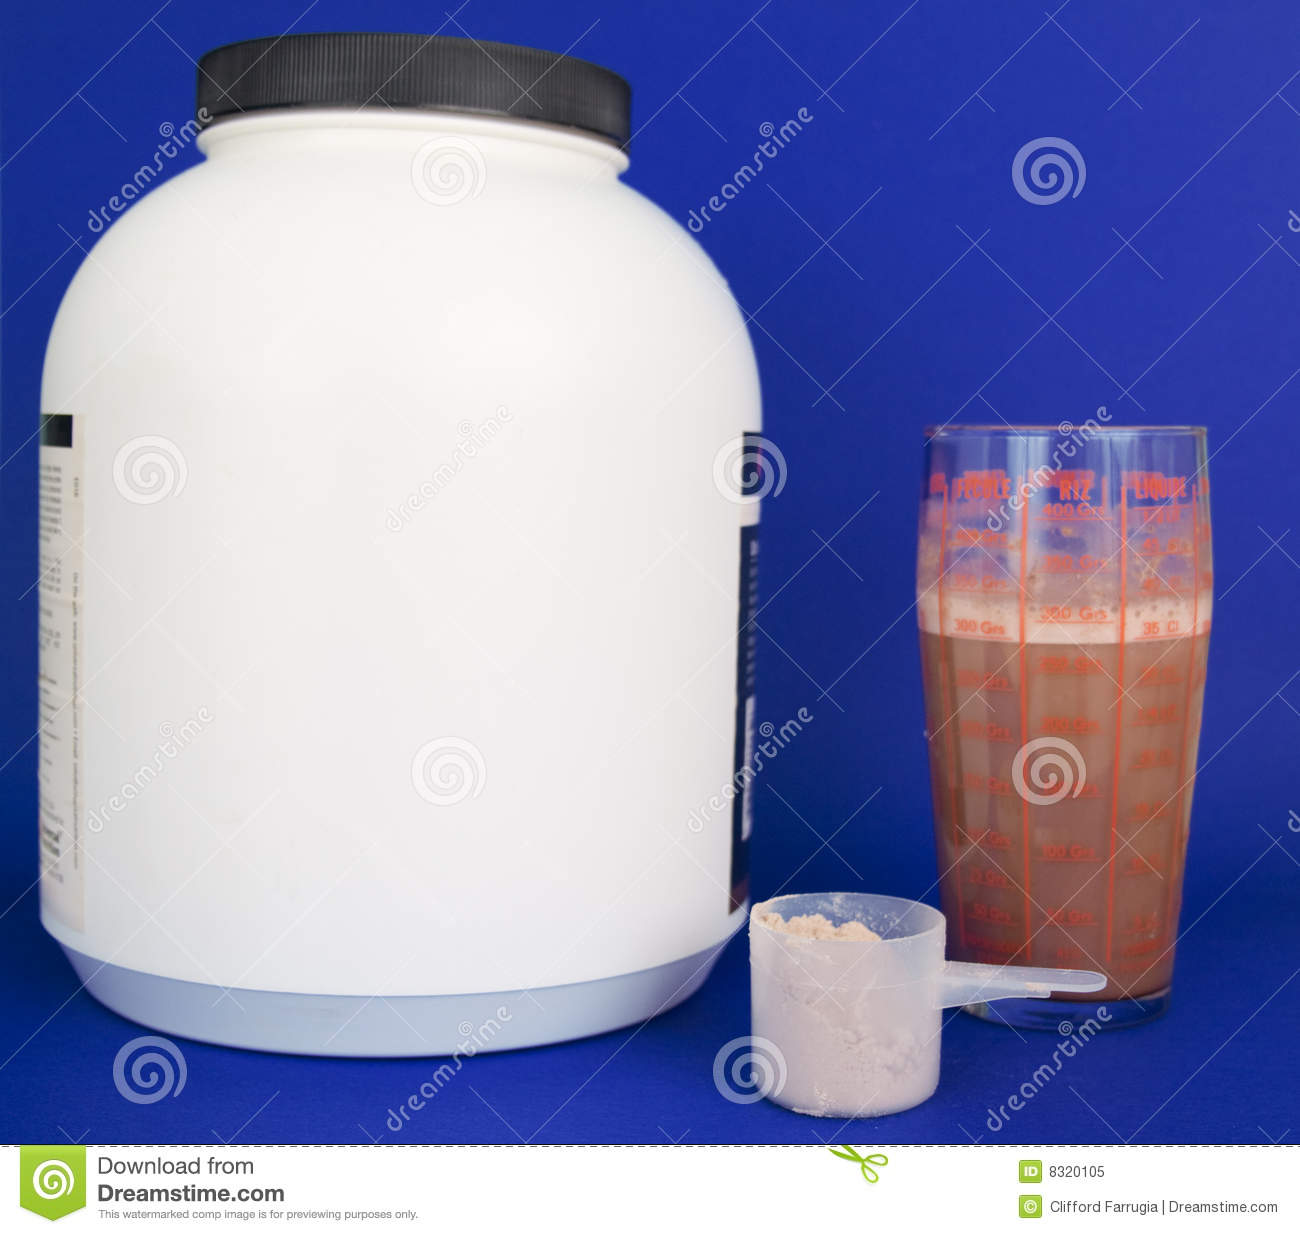 Container glass large protein scoop shake